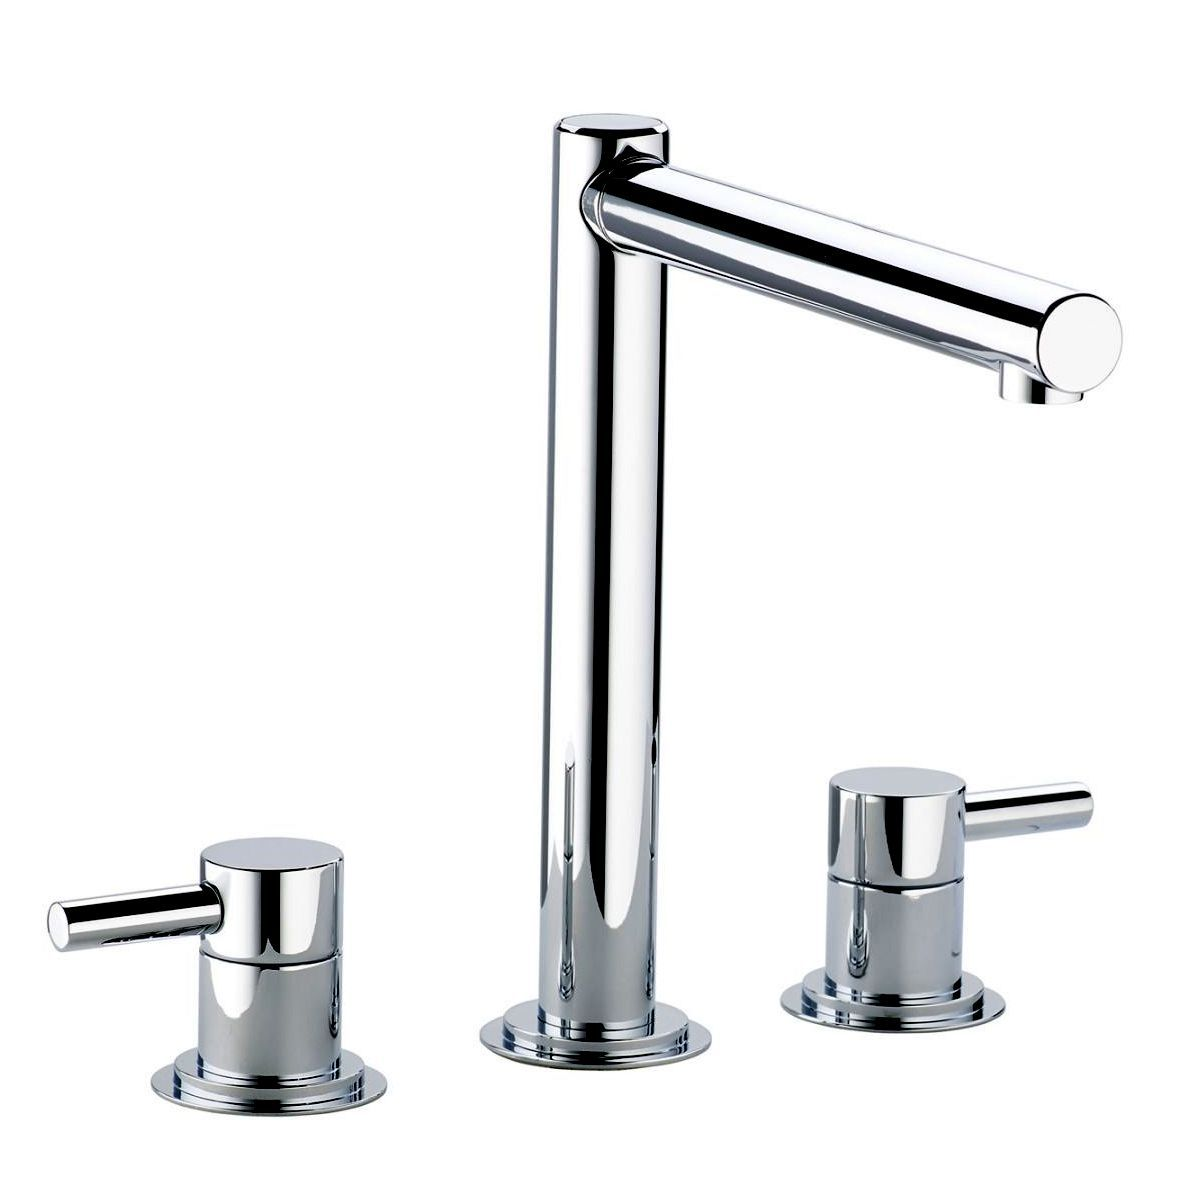 Swadling Absolute Tall Deck Mounted Basin Mixer